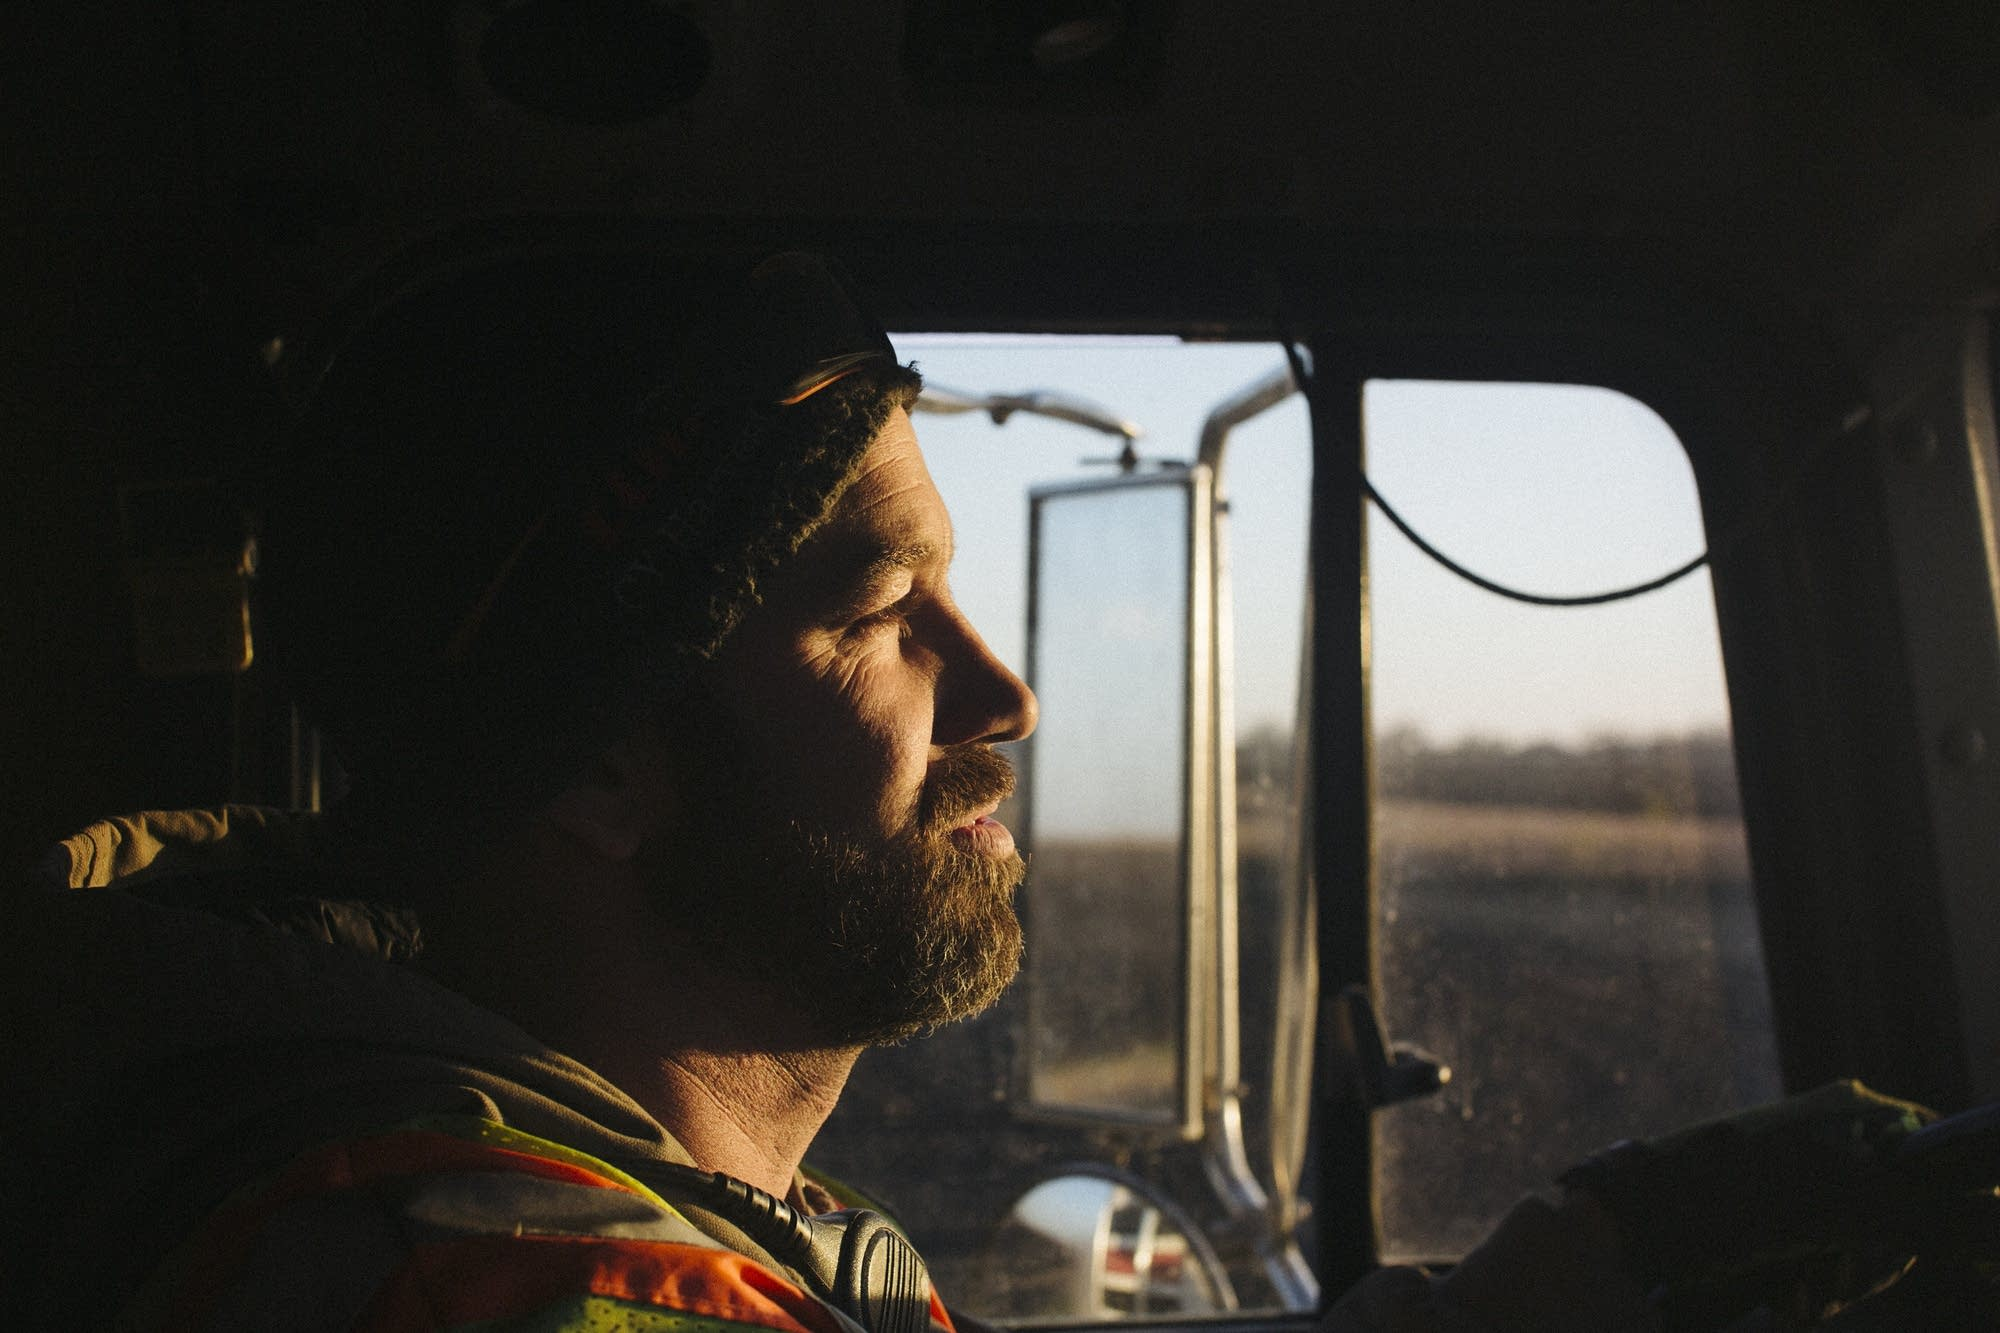 Sean Collins drives a truck to the storage site.